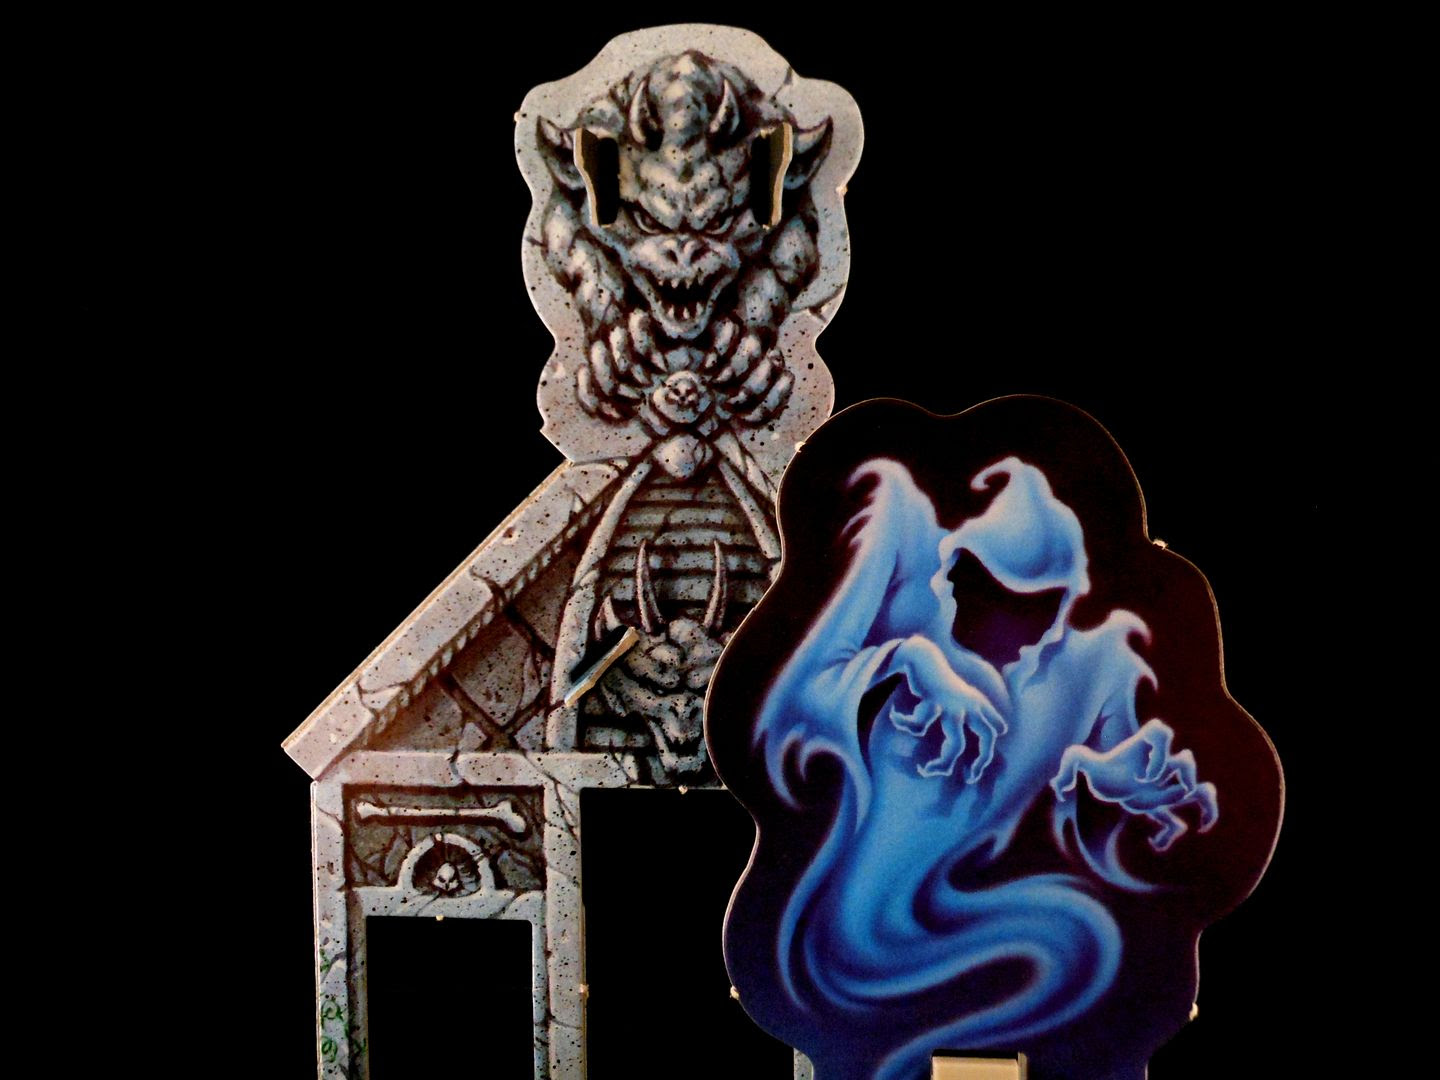 The headless ghost is waiting for you in the Goosebumps Terror in the Graveyard board game.